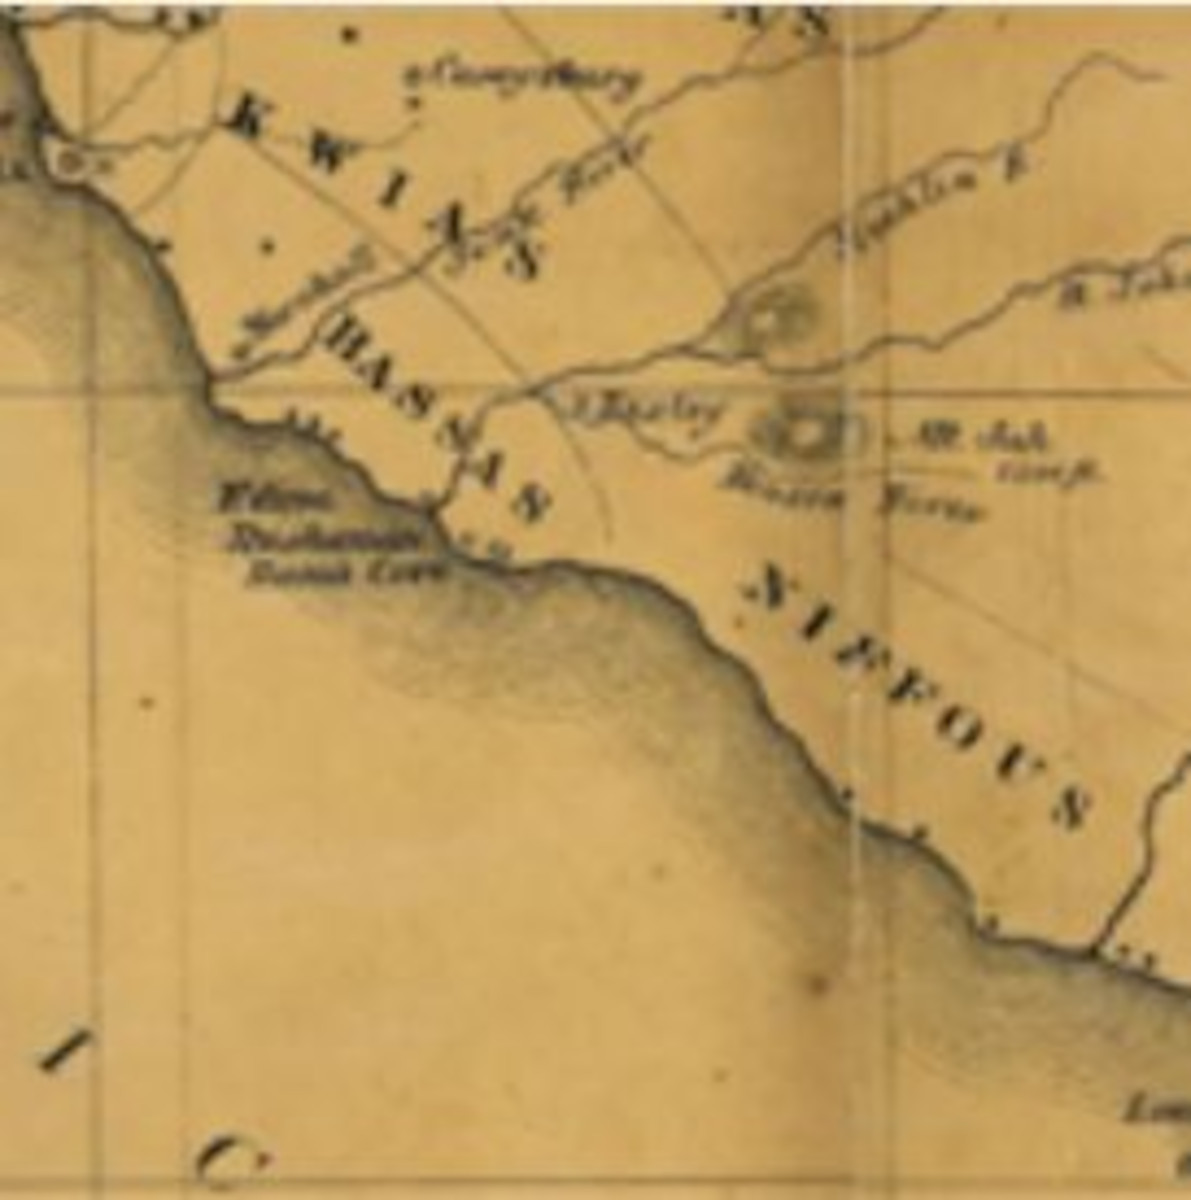 Map of the coast of Liberia, with a relief shown by hachures. It shows boundary of tribes, mission stations, colonist towns, and native towns.